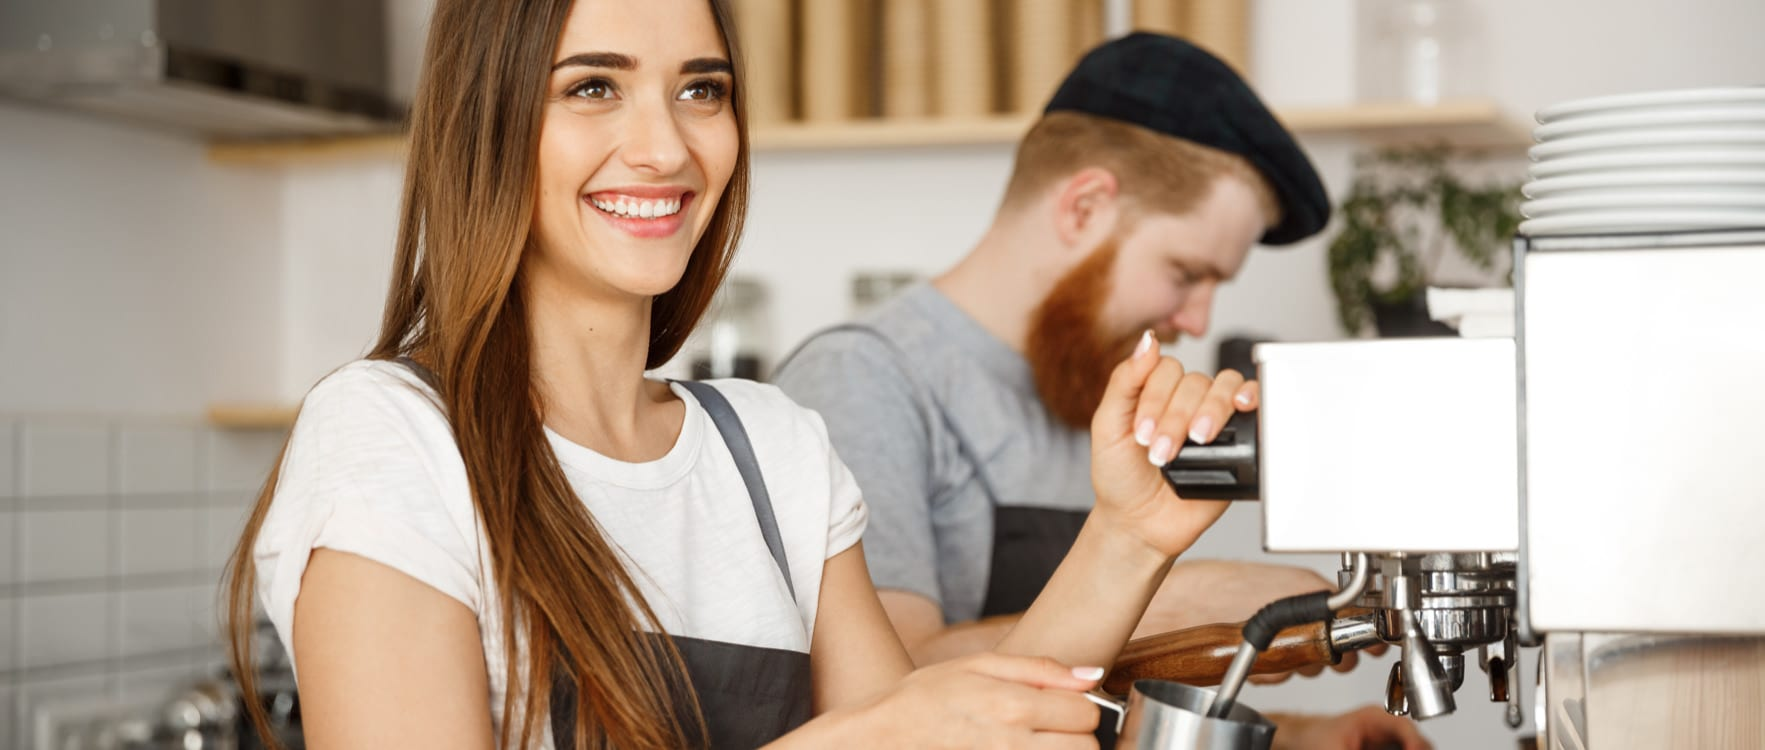 Barista couple working with a coffee maker